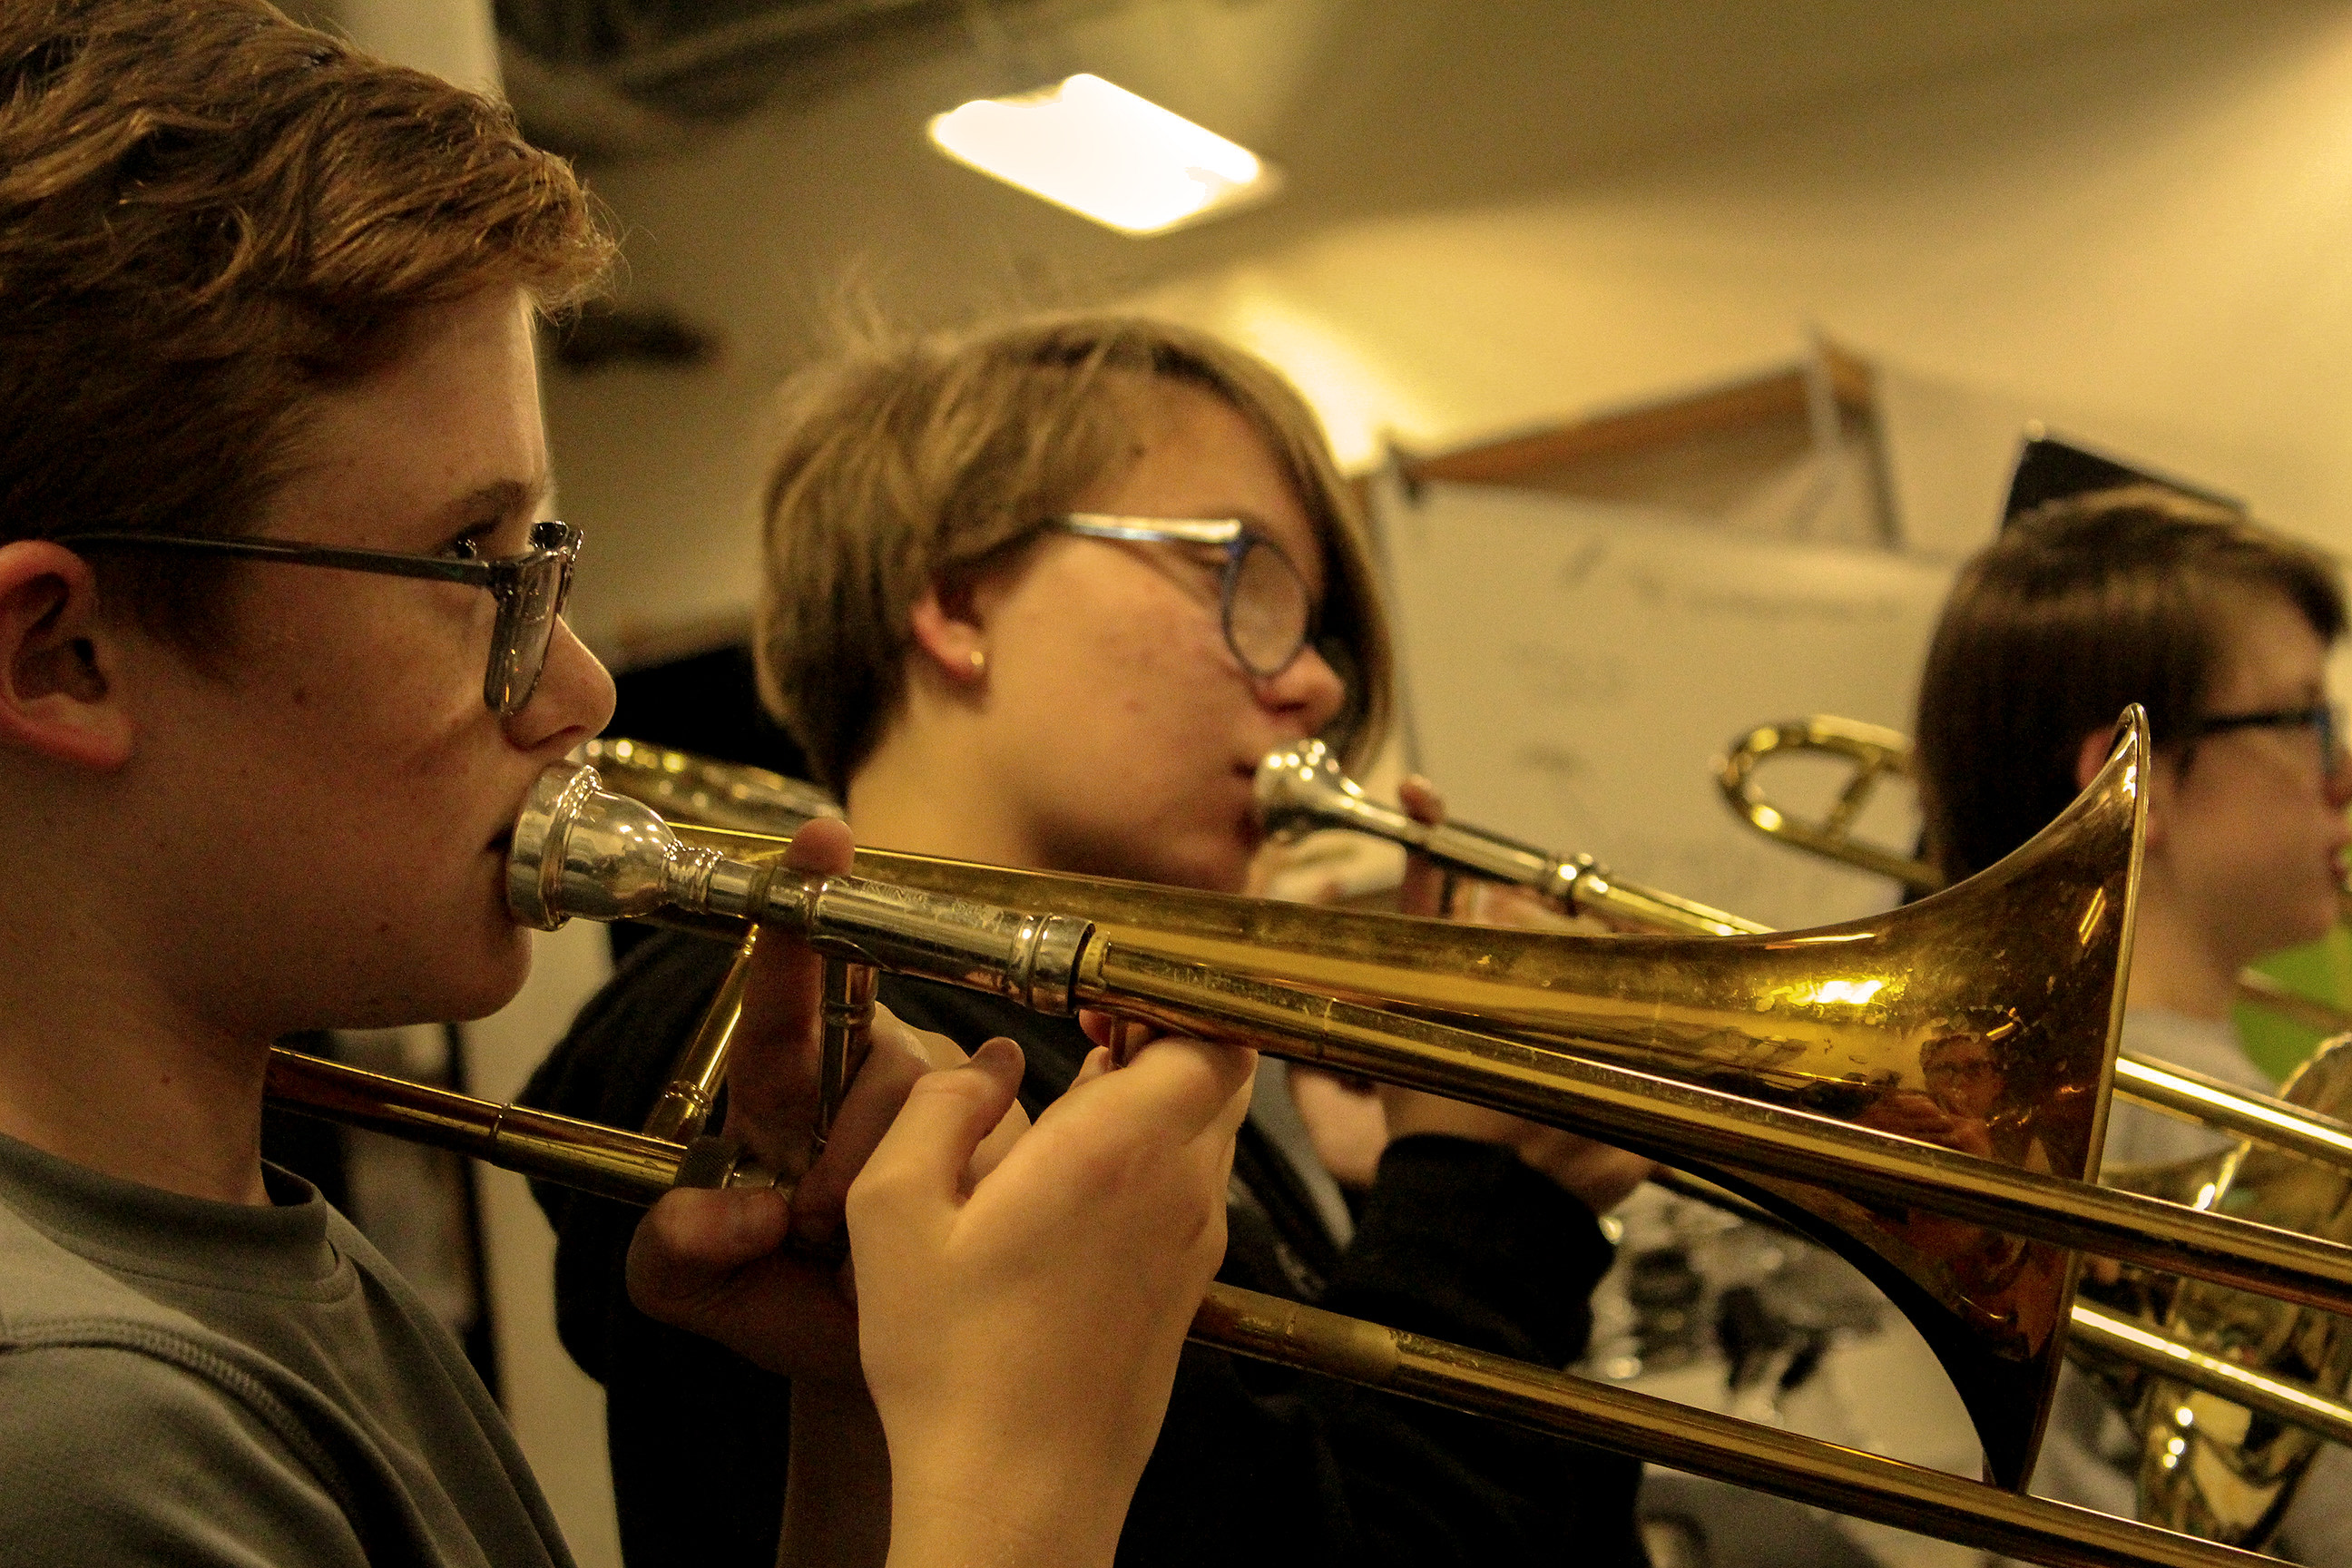 Band rehearsal, trumpet section.